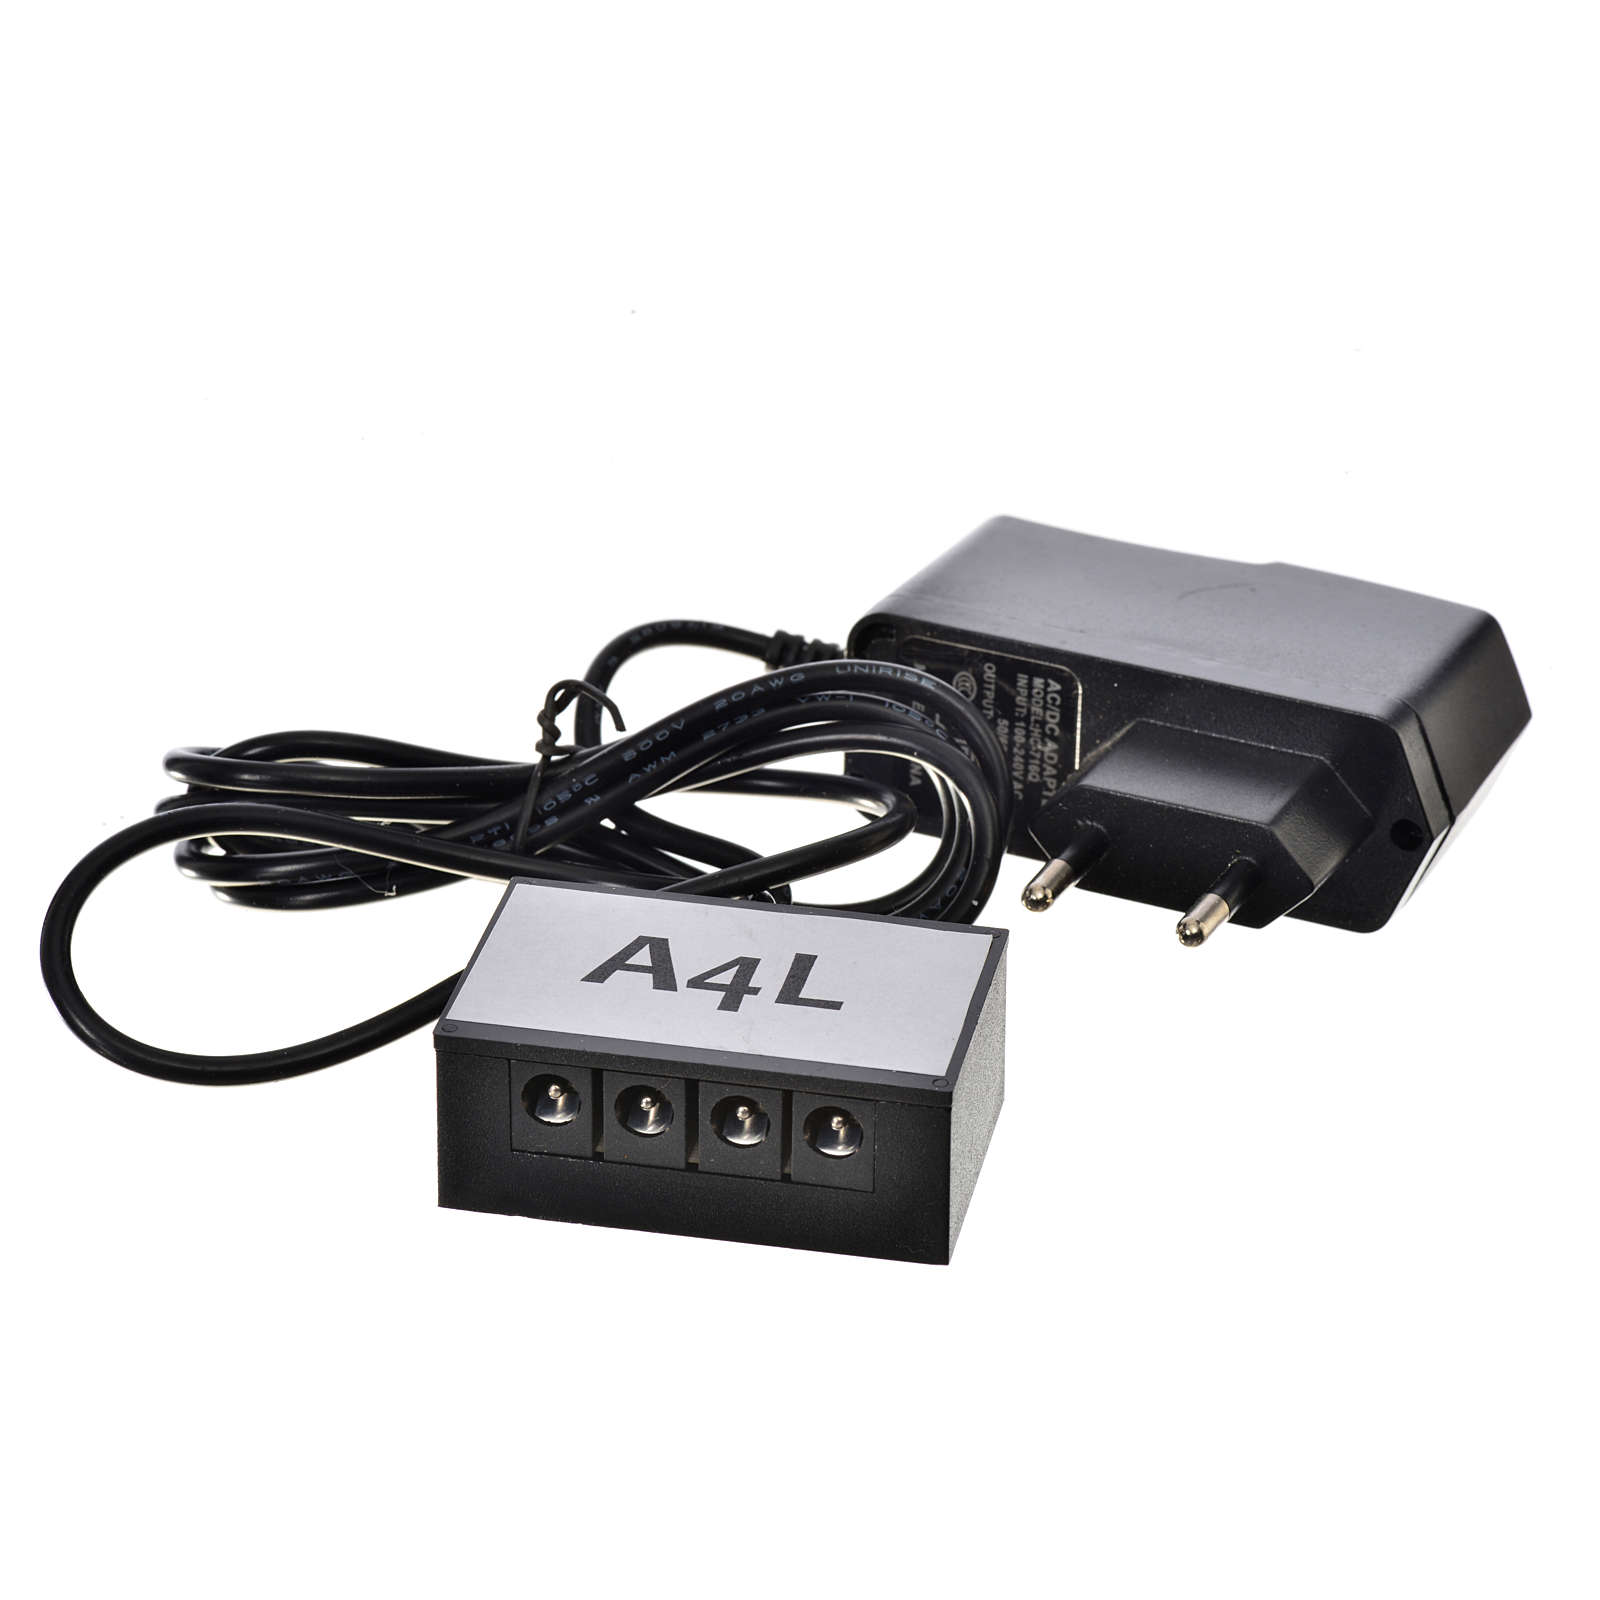 Power supply, fix voltage for LED 4